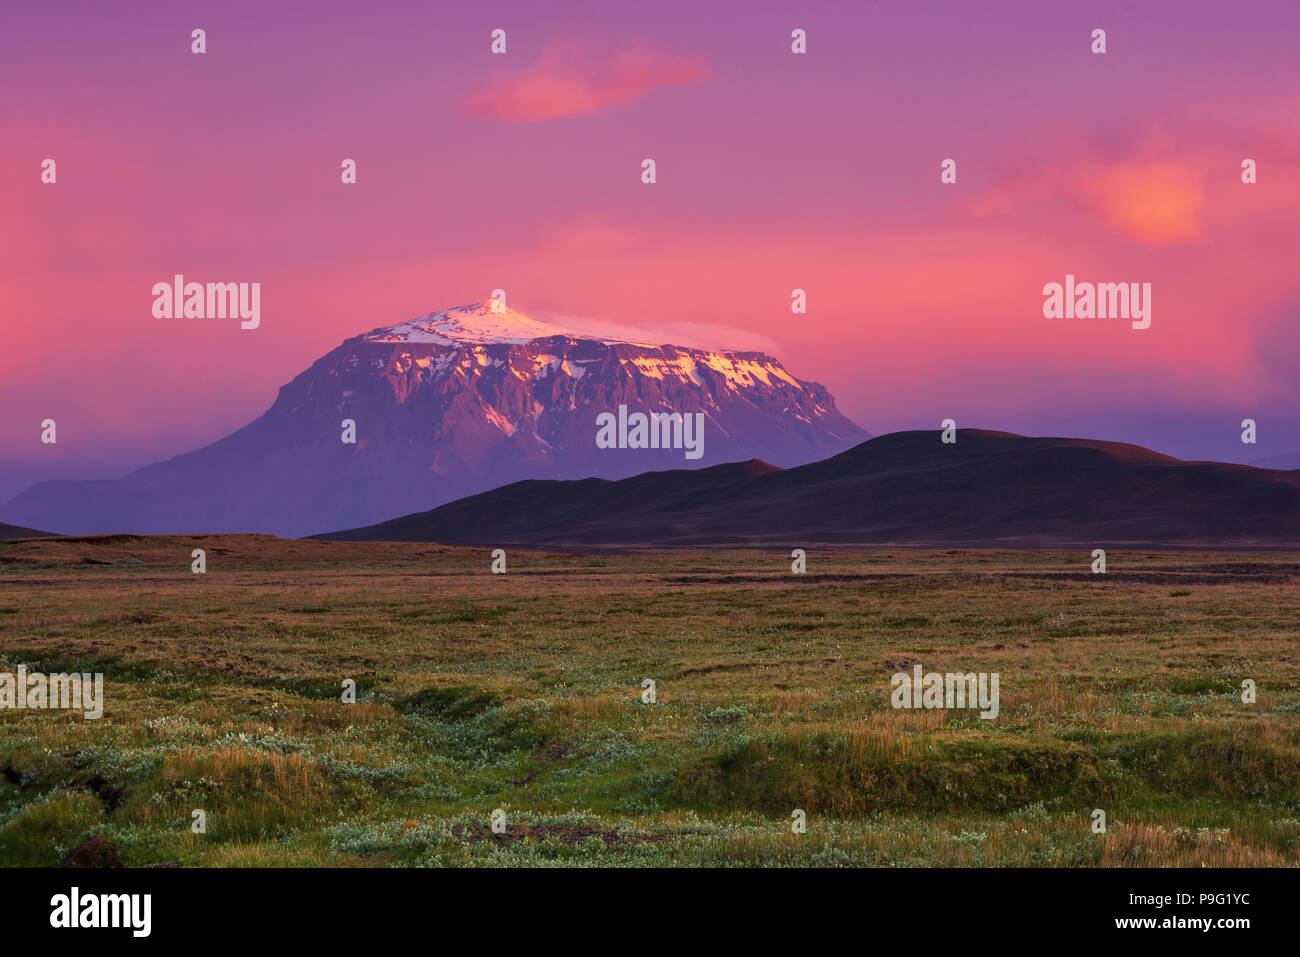 Mountain at sunset - Stock Image